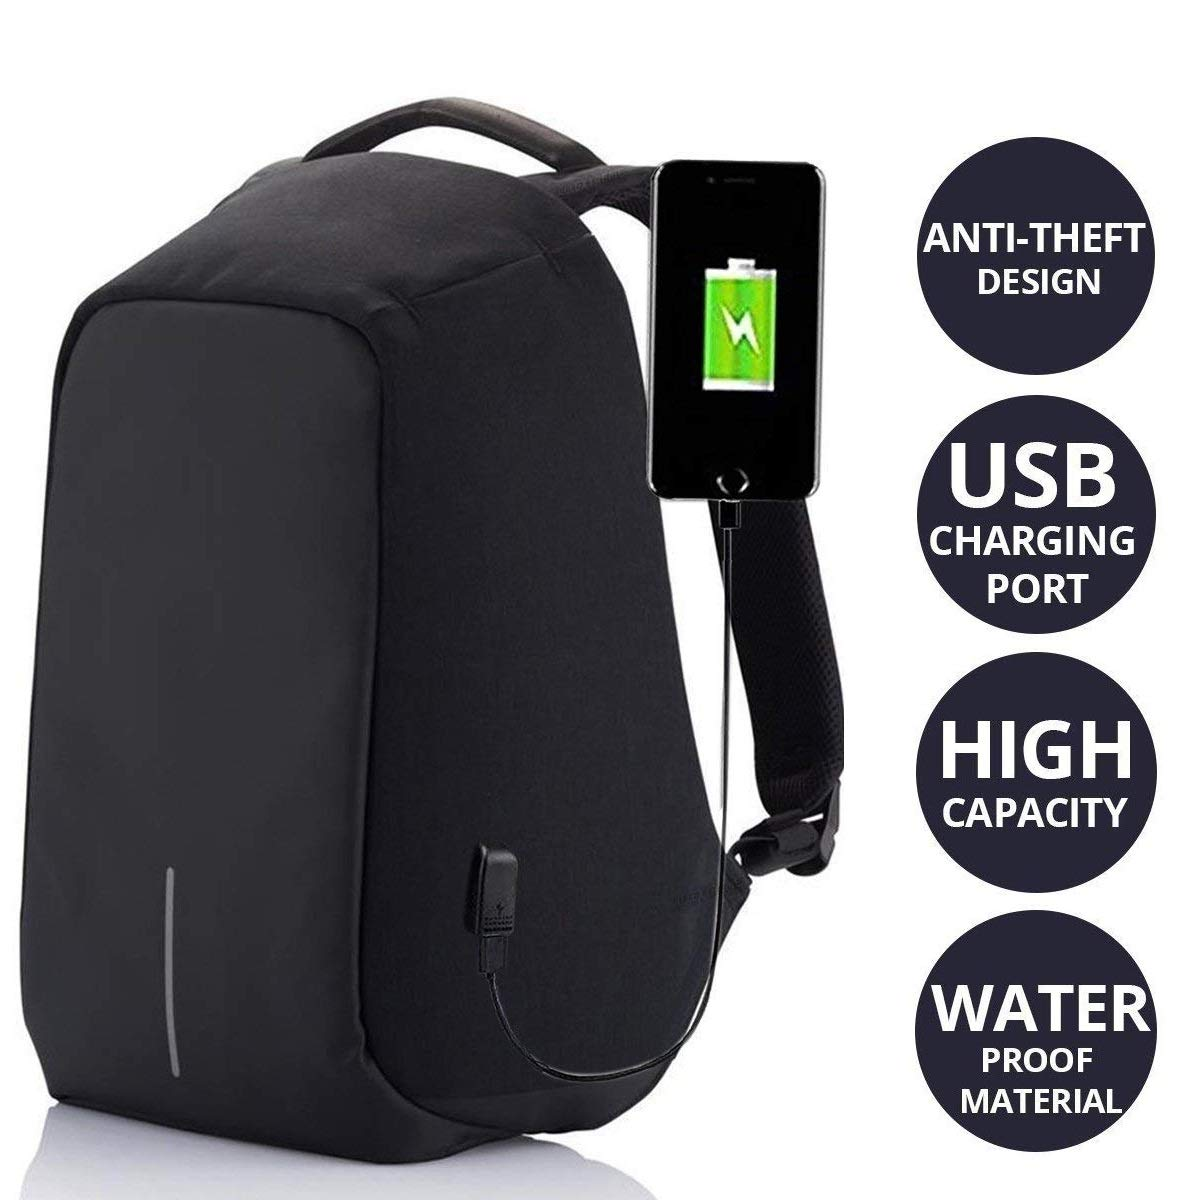 2071ba29f633 Andride Anti Theft Backpack Business Laptop Bag with USB Charging Port  Waterproof Camping Organizer Bag Anti-Theft Bagpack (Black)  Amazon.in  Bags